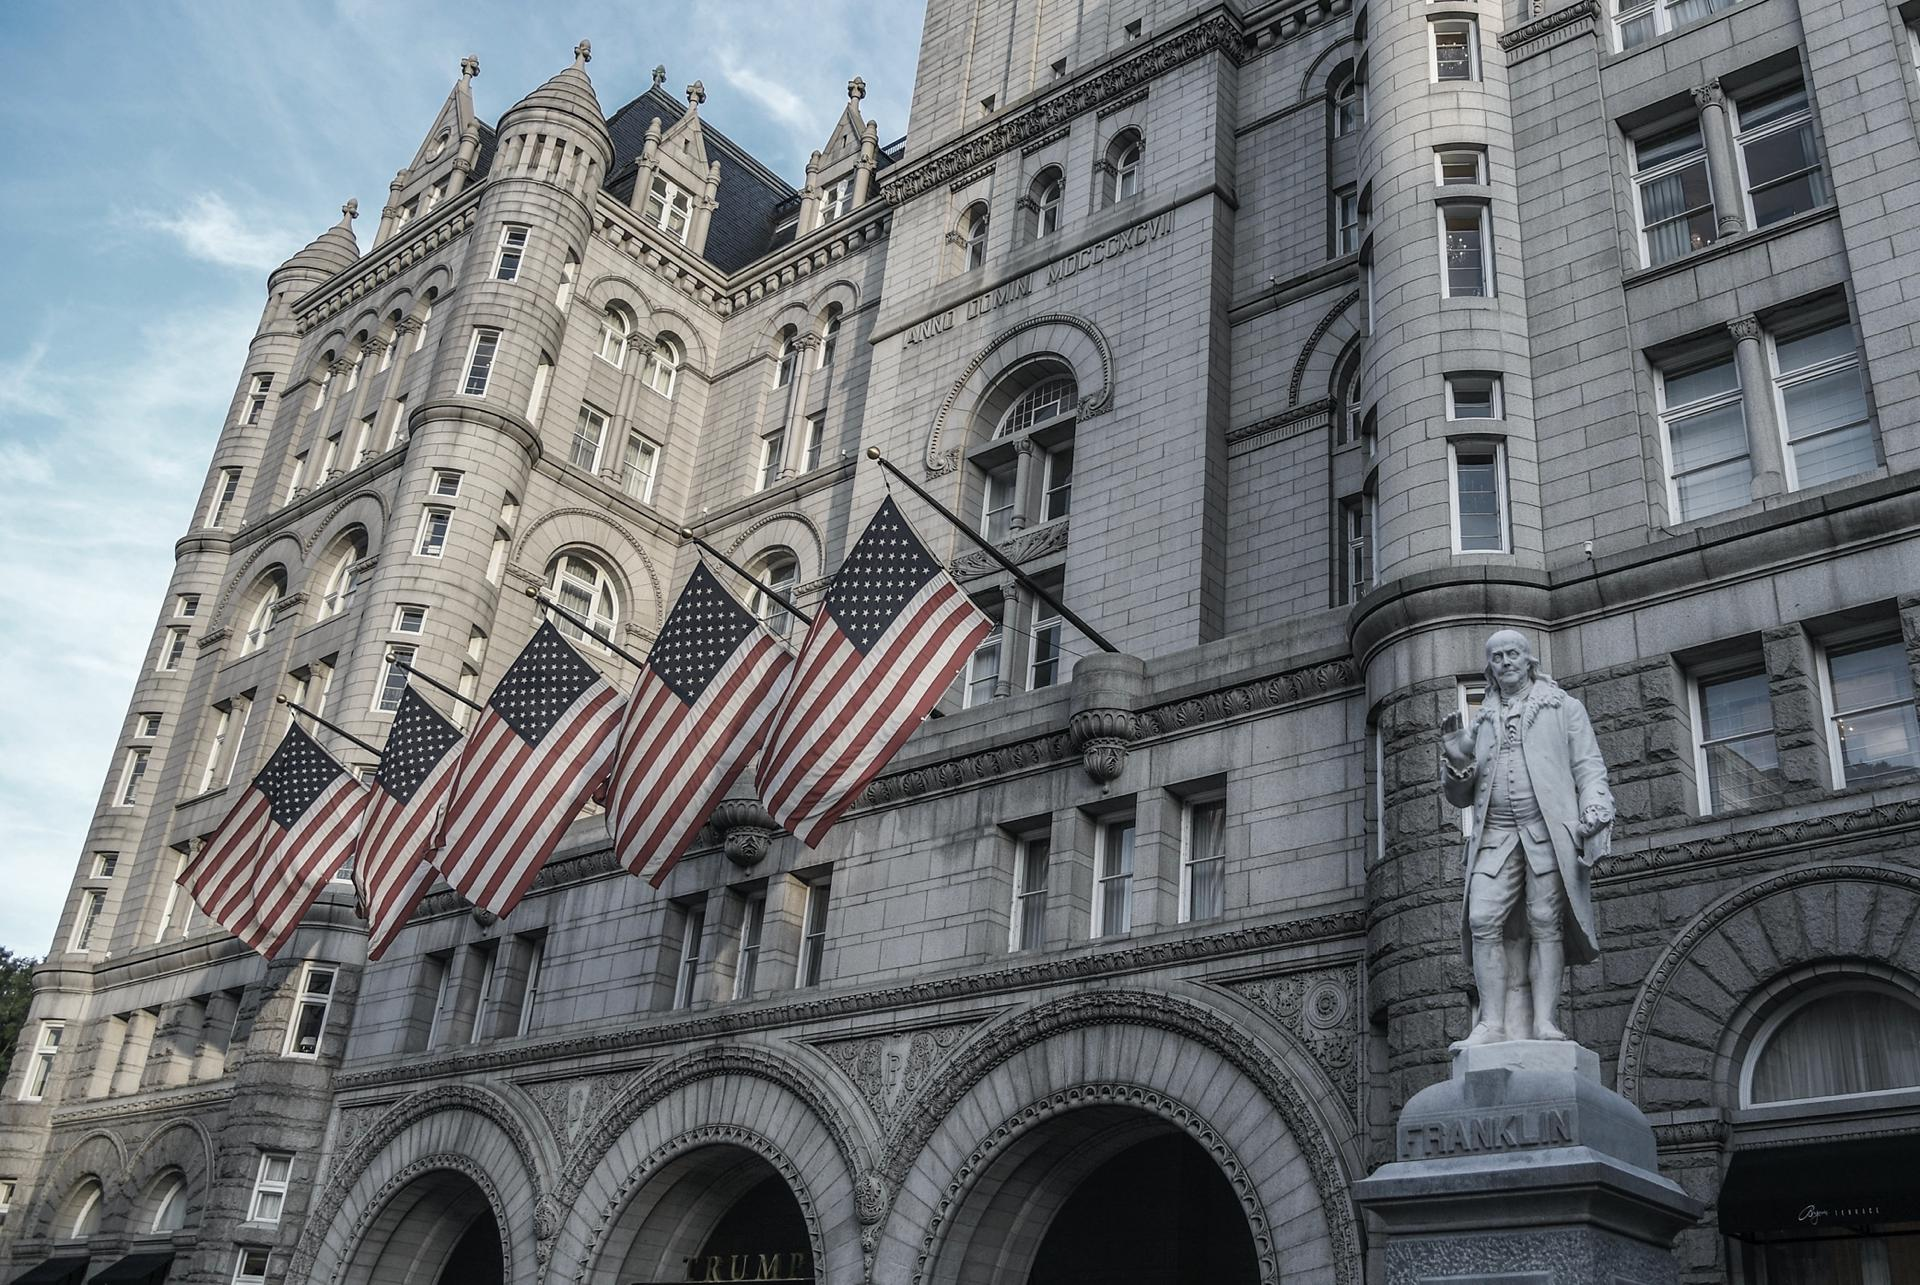 The Trump International Hotel located at 1100 Pennsylvania Ave, NW.